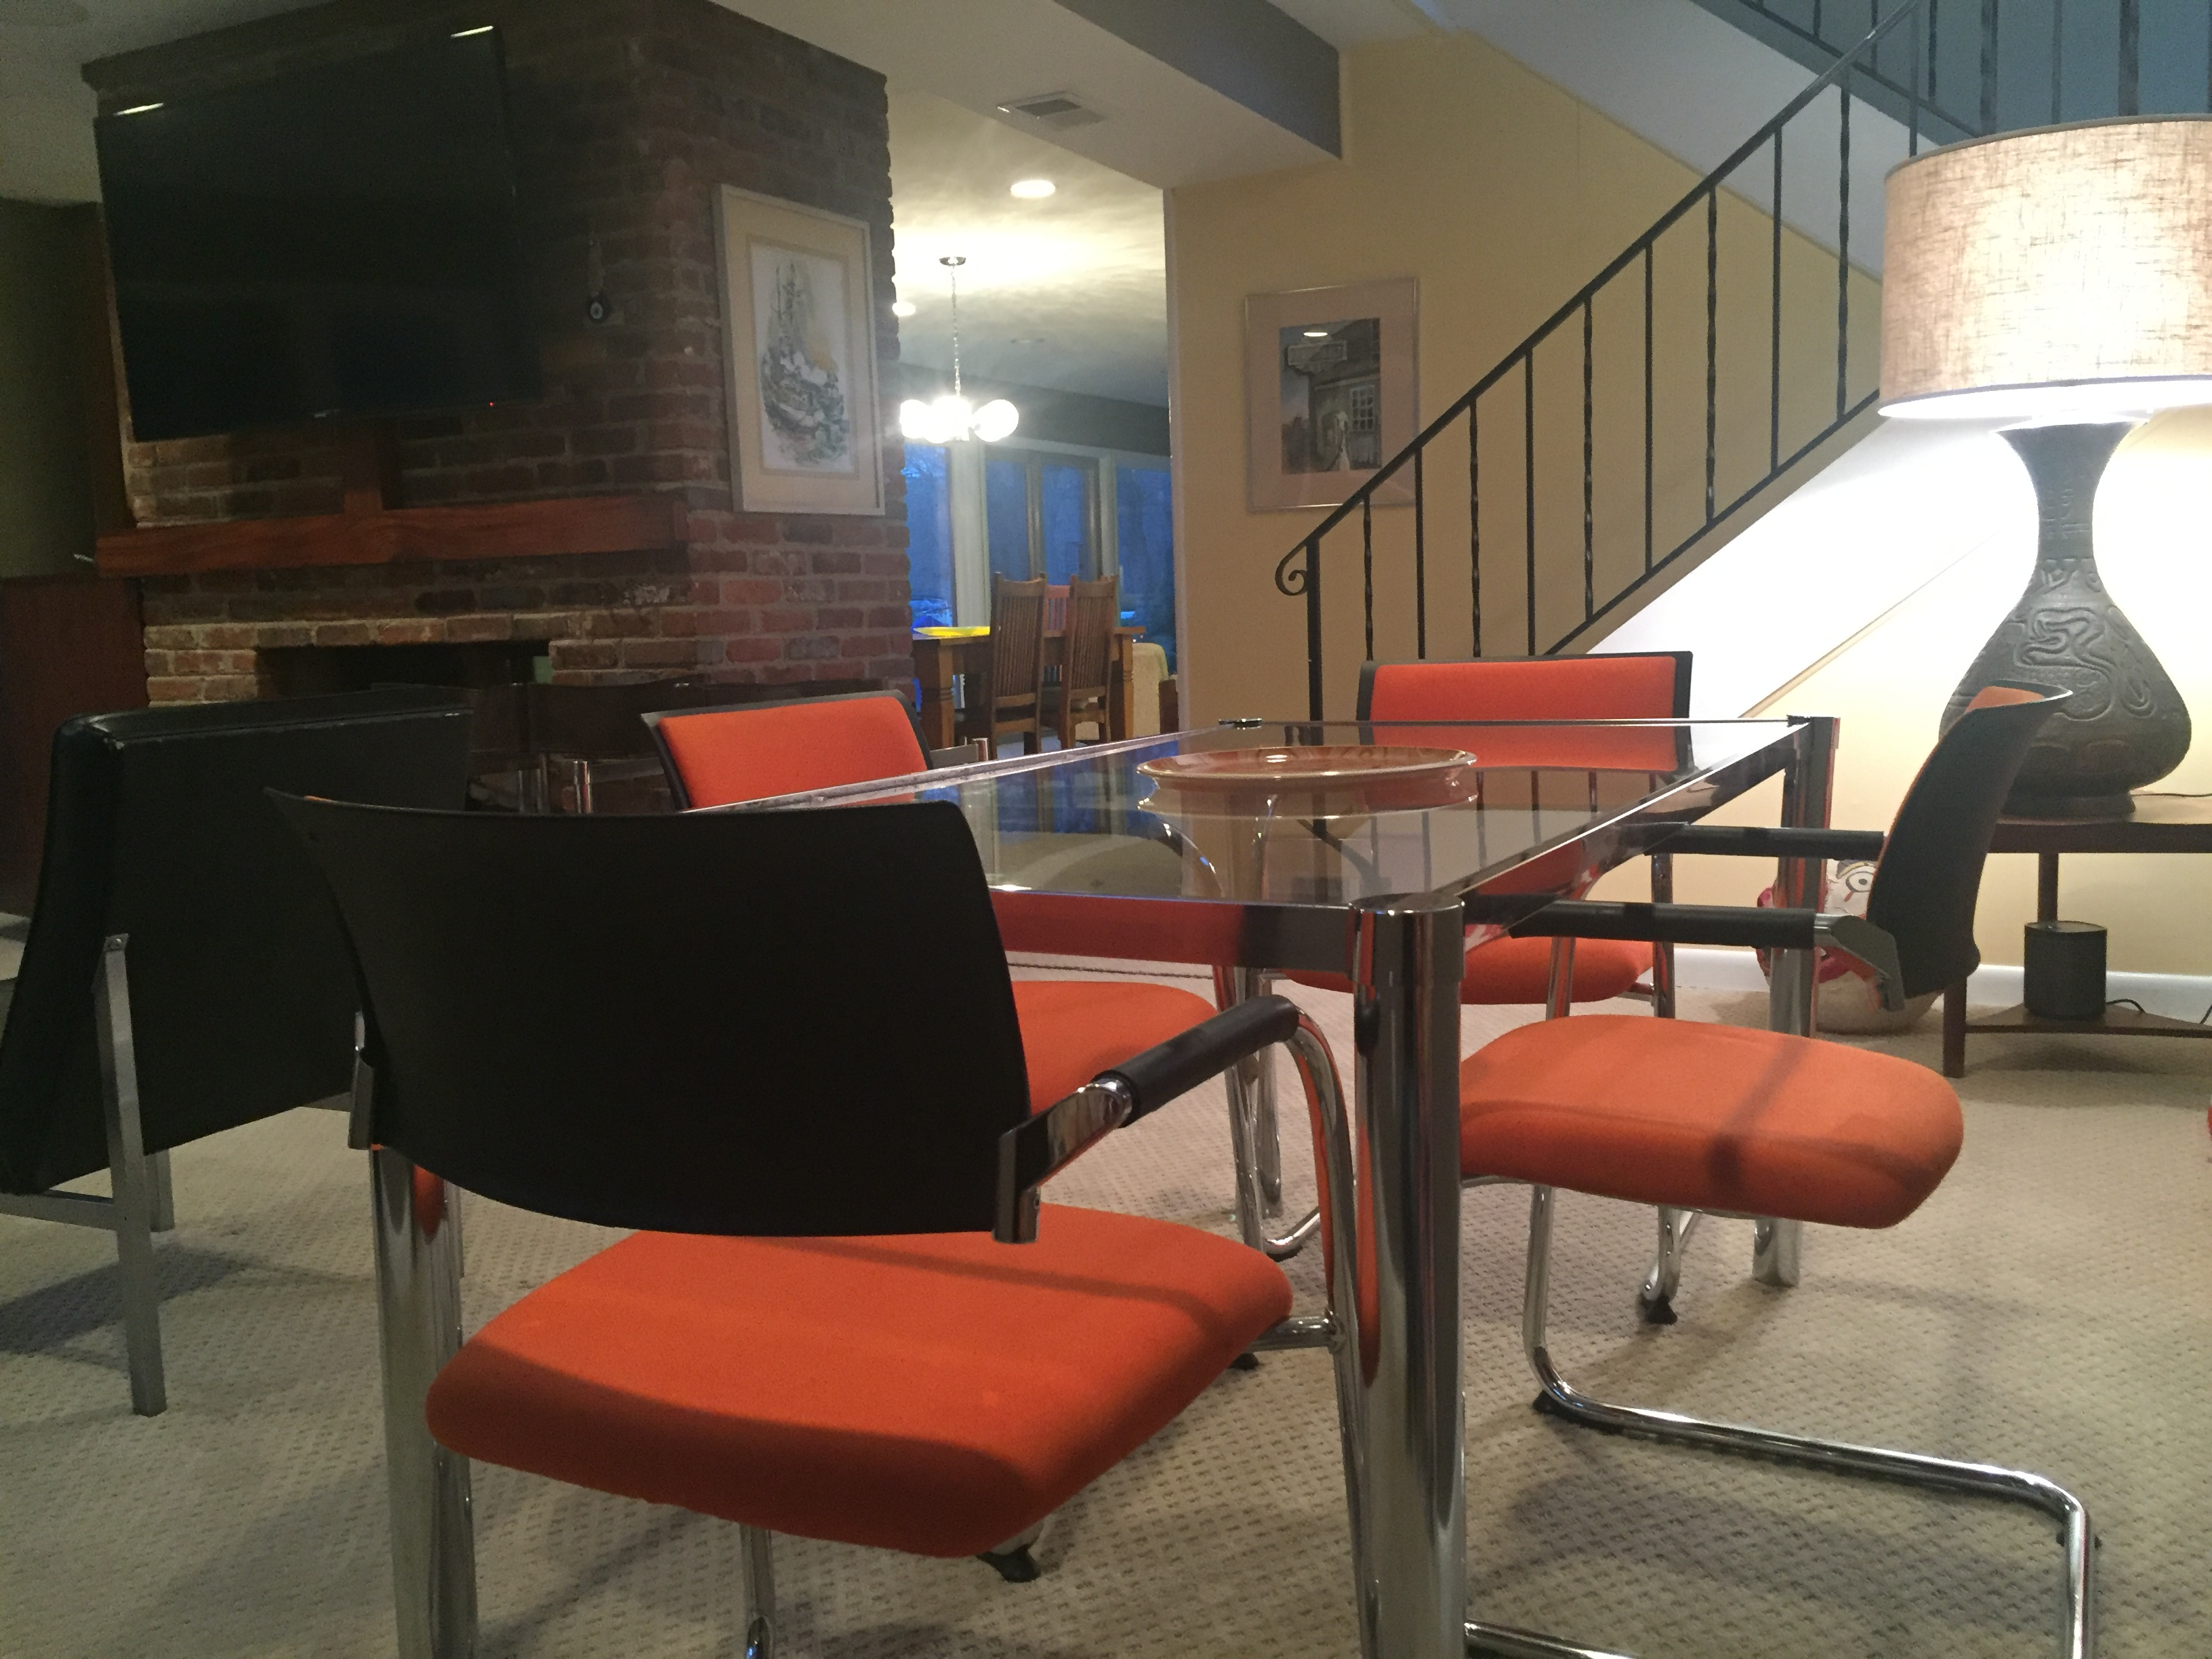 Item: Orange Dauphin chairs